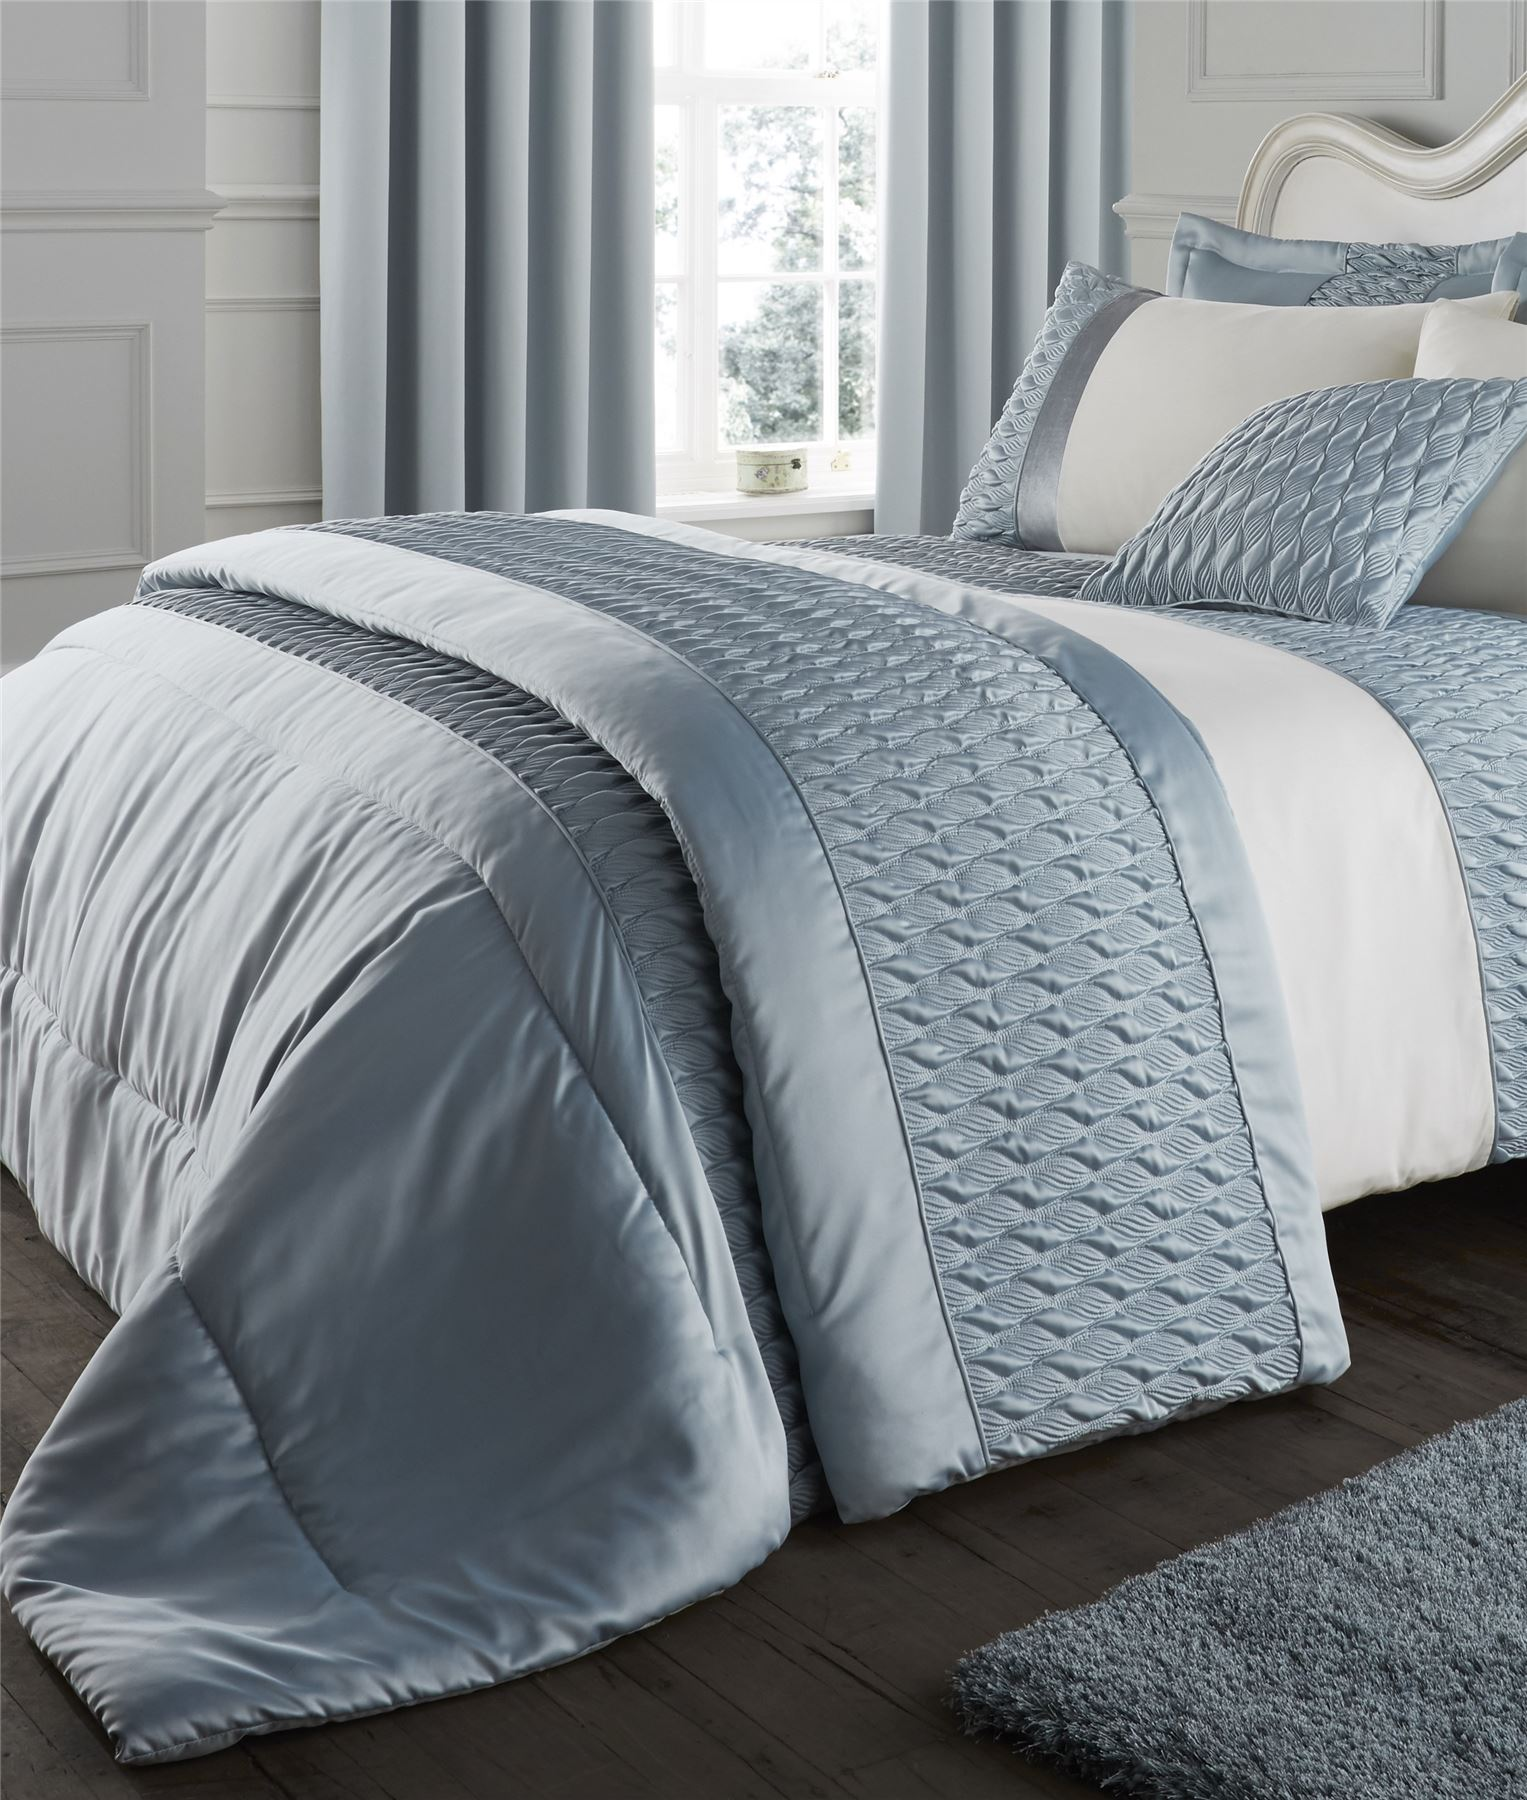 Duck Egg Catherine Lansfield Bedding Bed Set Curtains